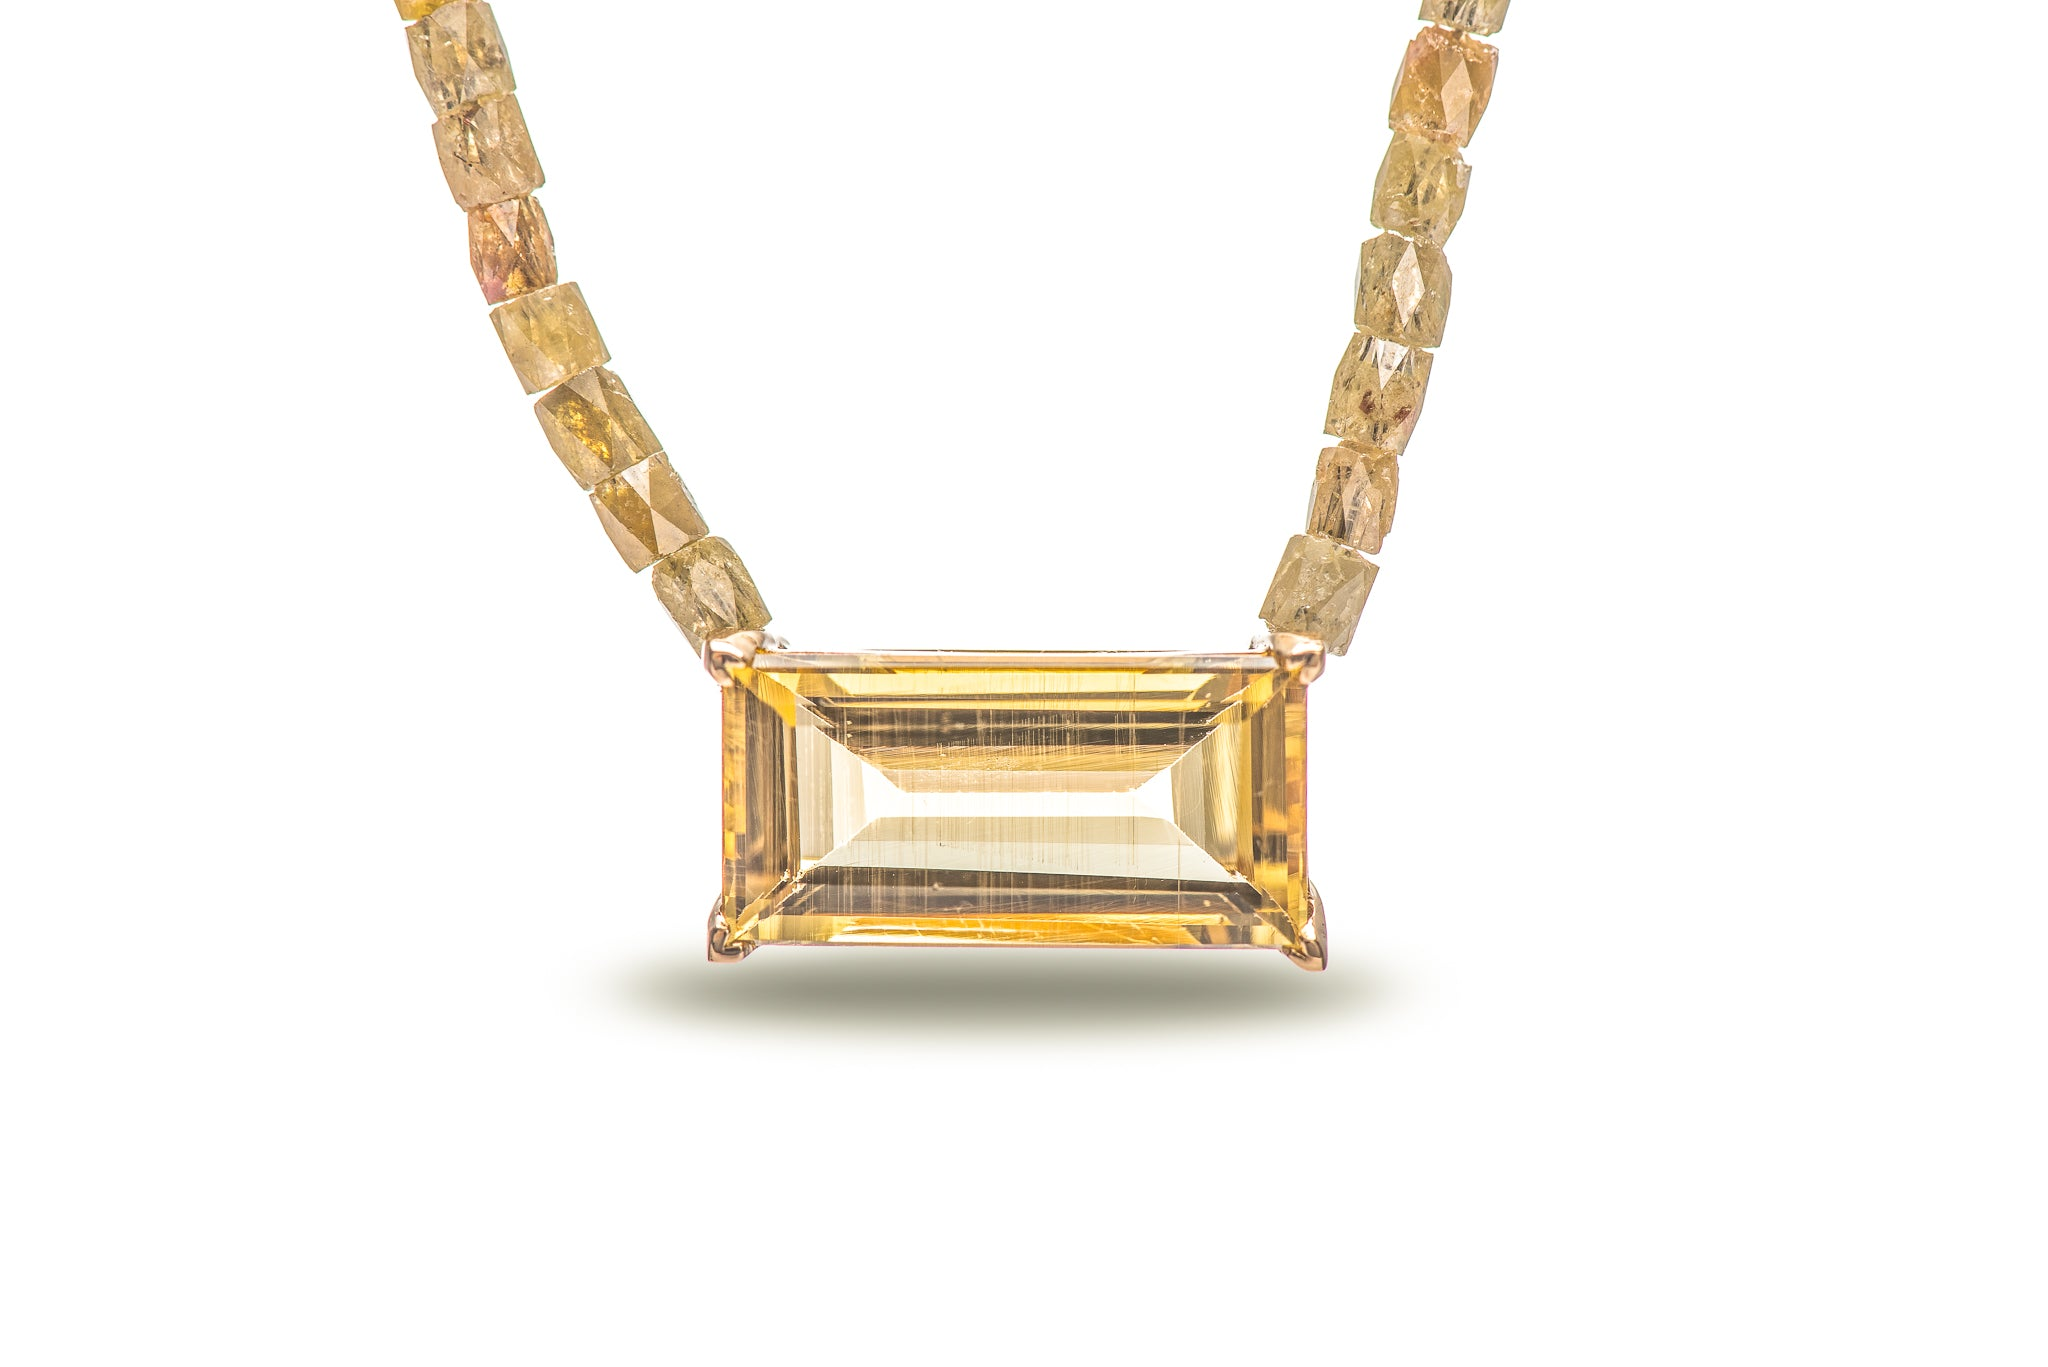 7 Carat Yellow Gold Beryl w/ 10 Carat Yellow Diamond Chain and 18K Yellow Gold Lock